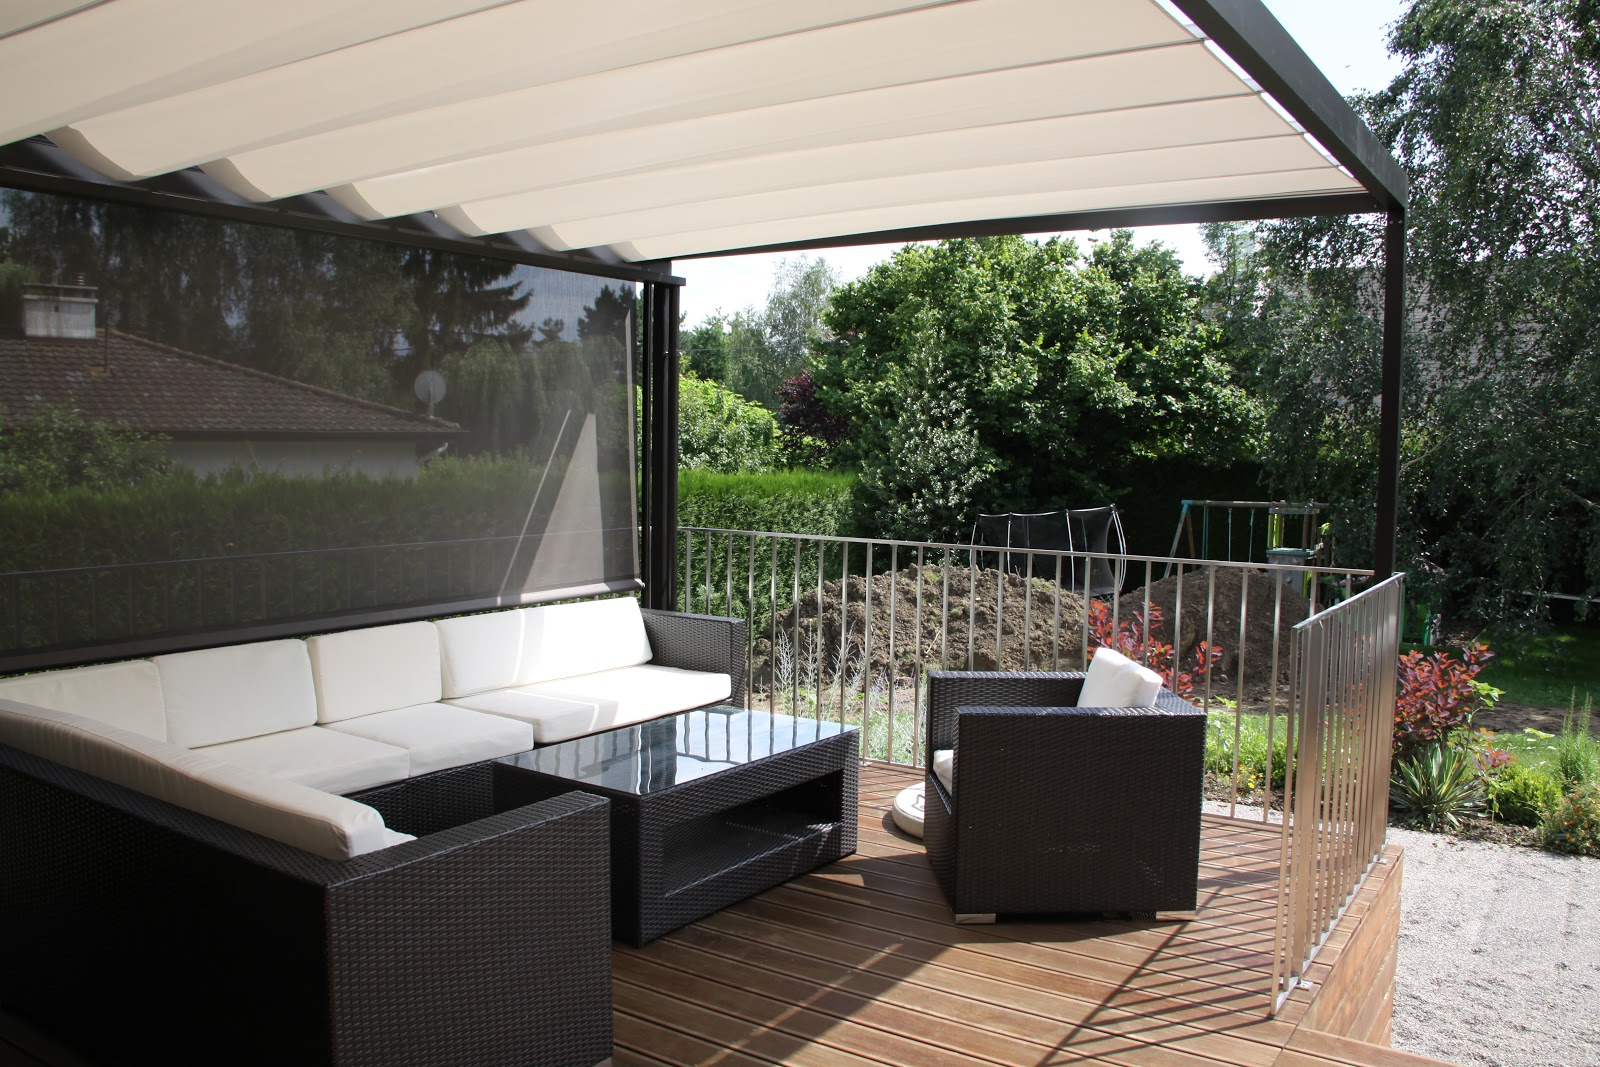 Sun shade for the large deck living in switzerland - Shade canopy for deck ...